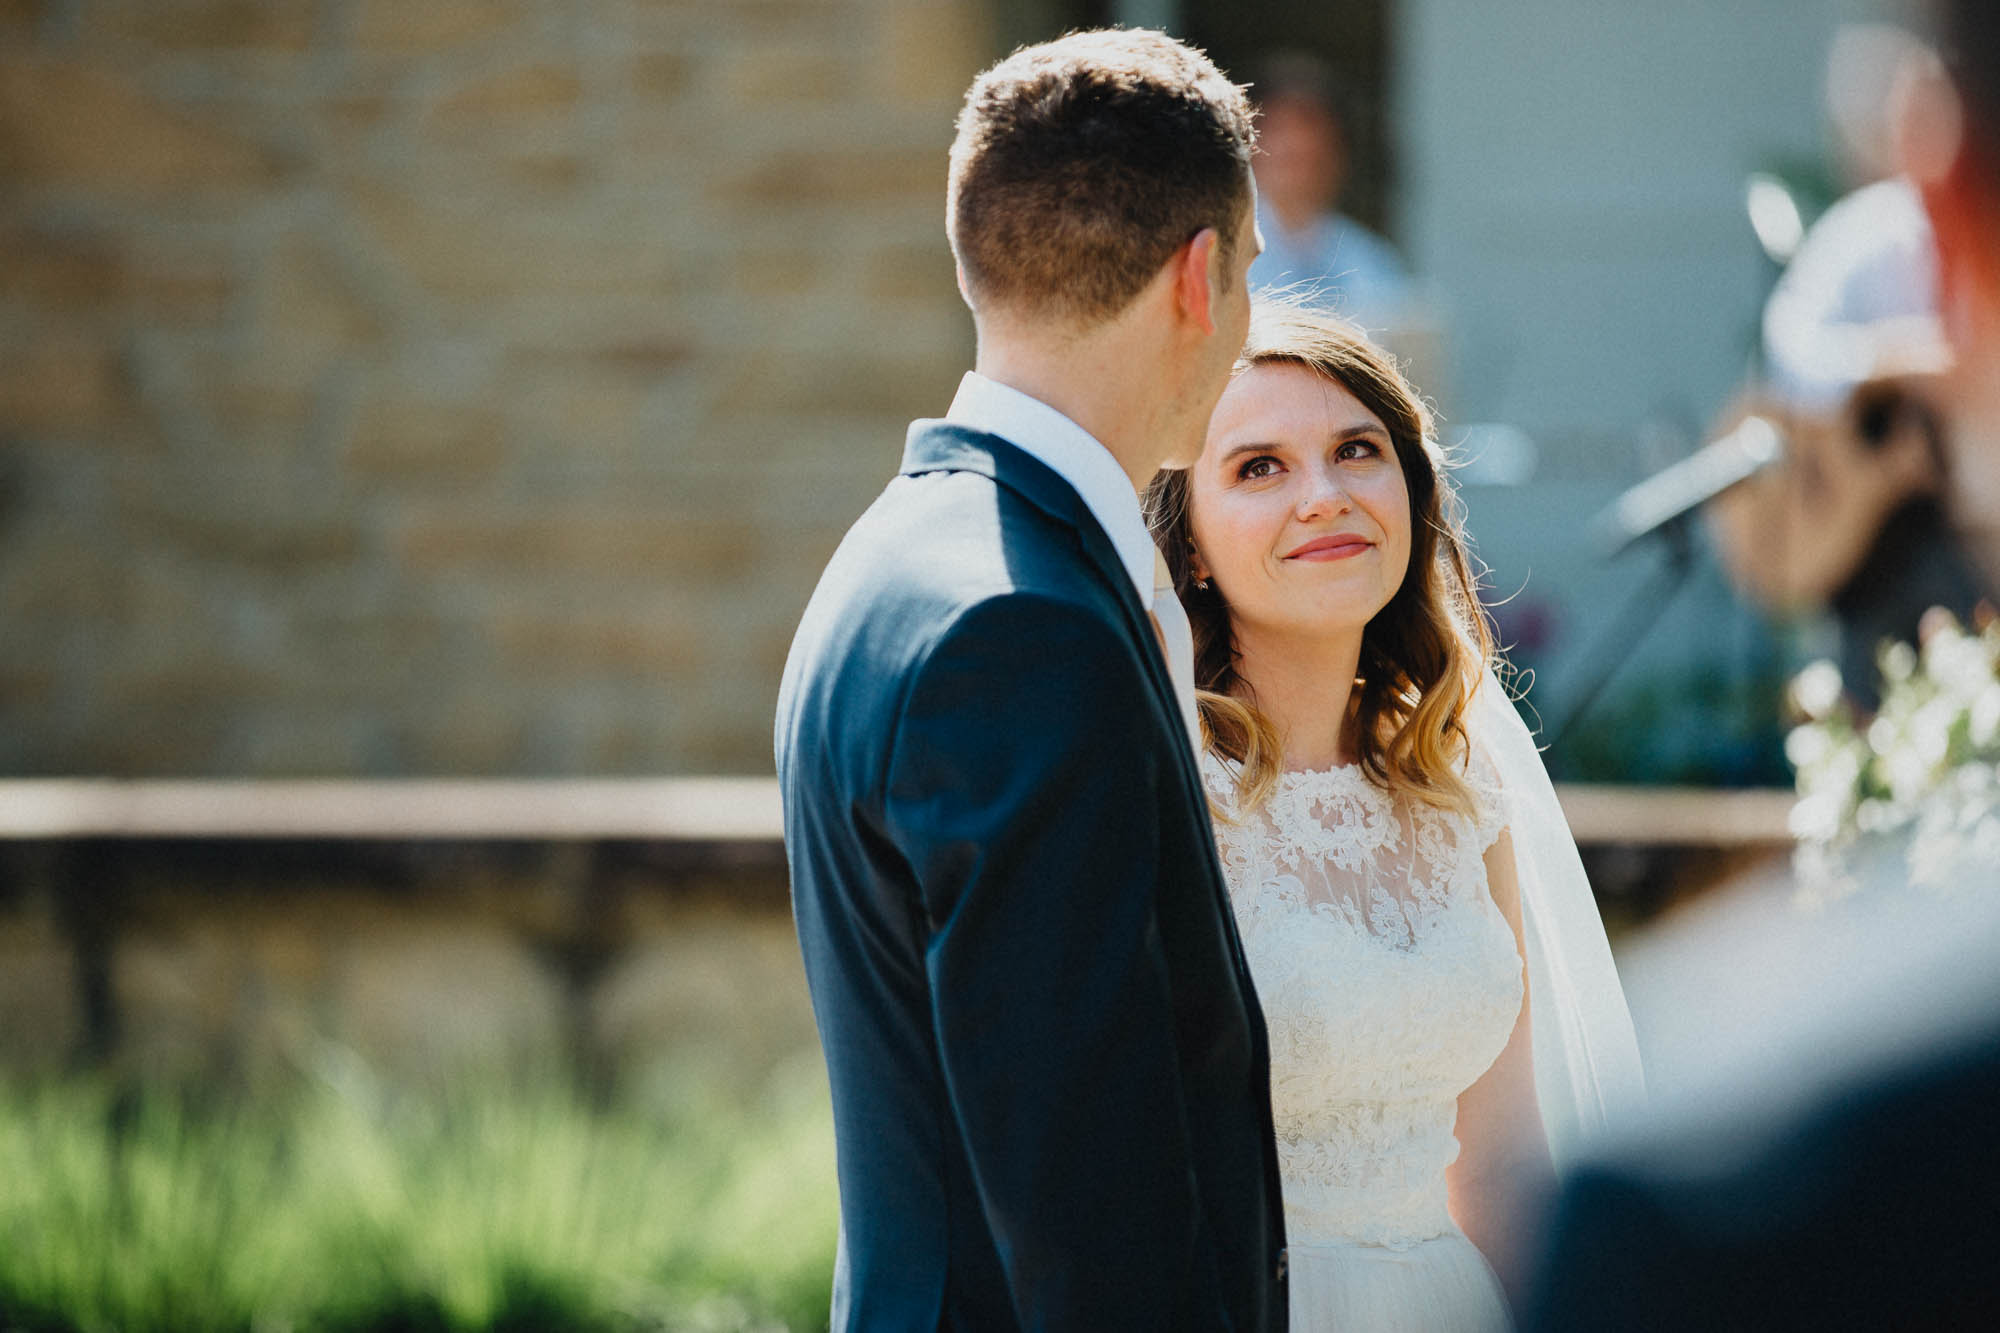 Bride Looks Lovingly At Her Groom During Their Ceremony